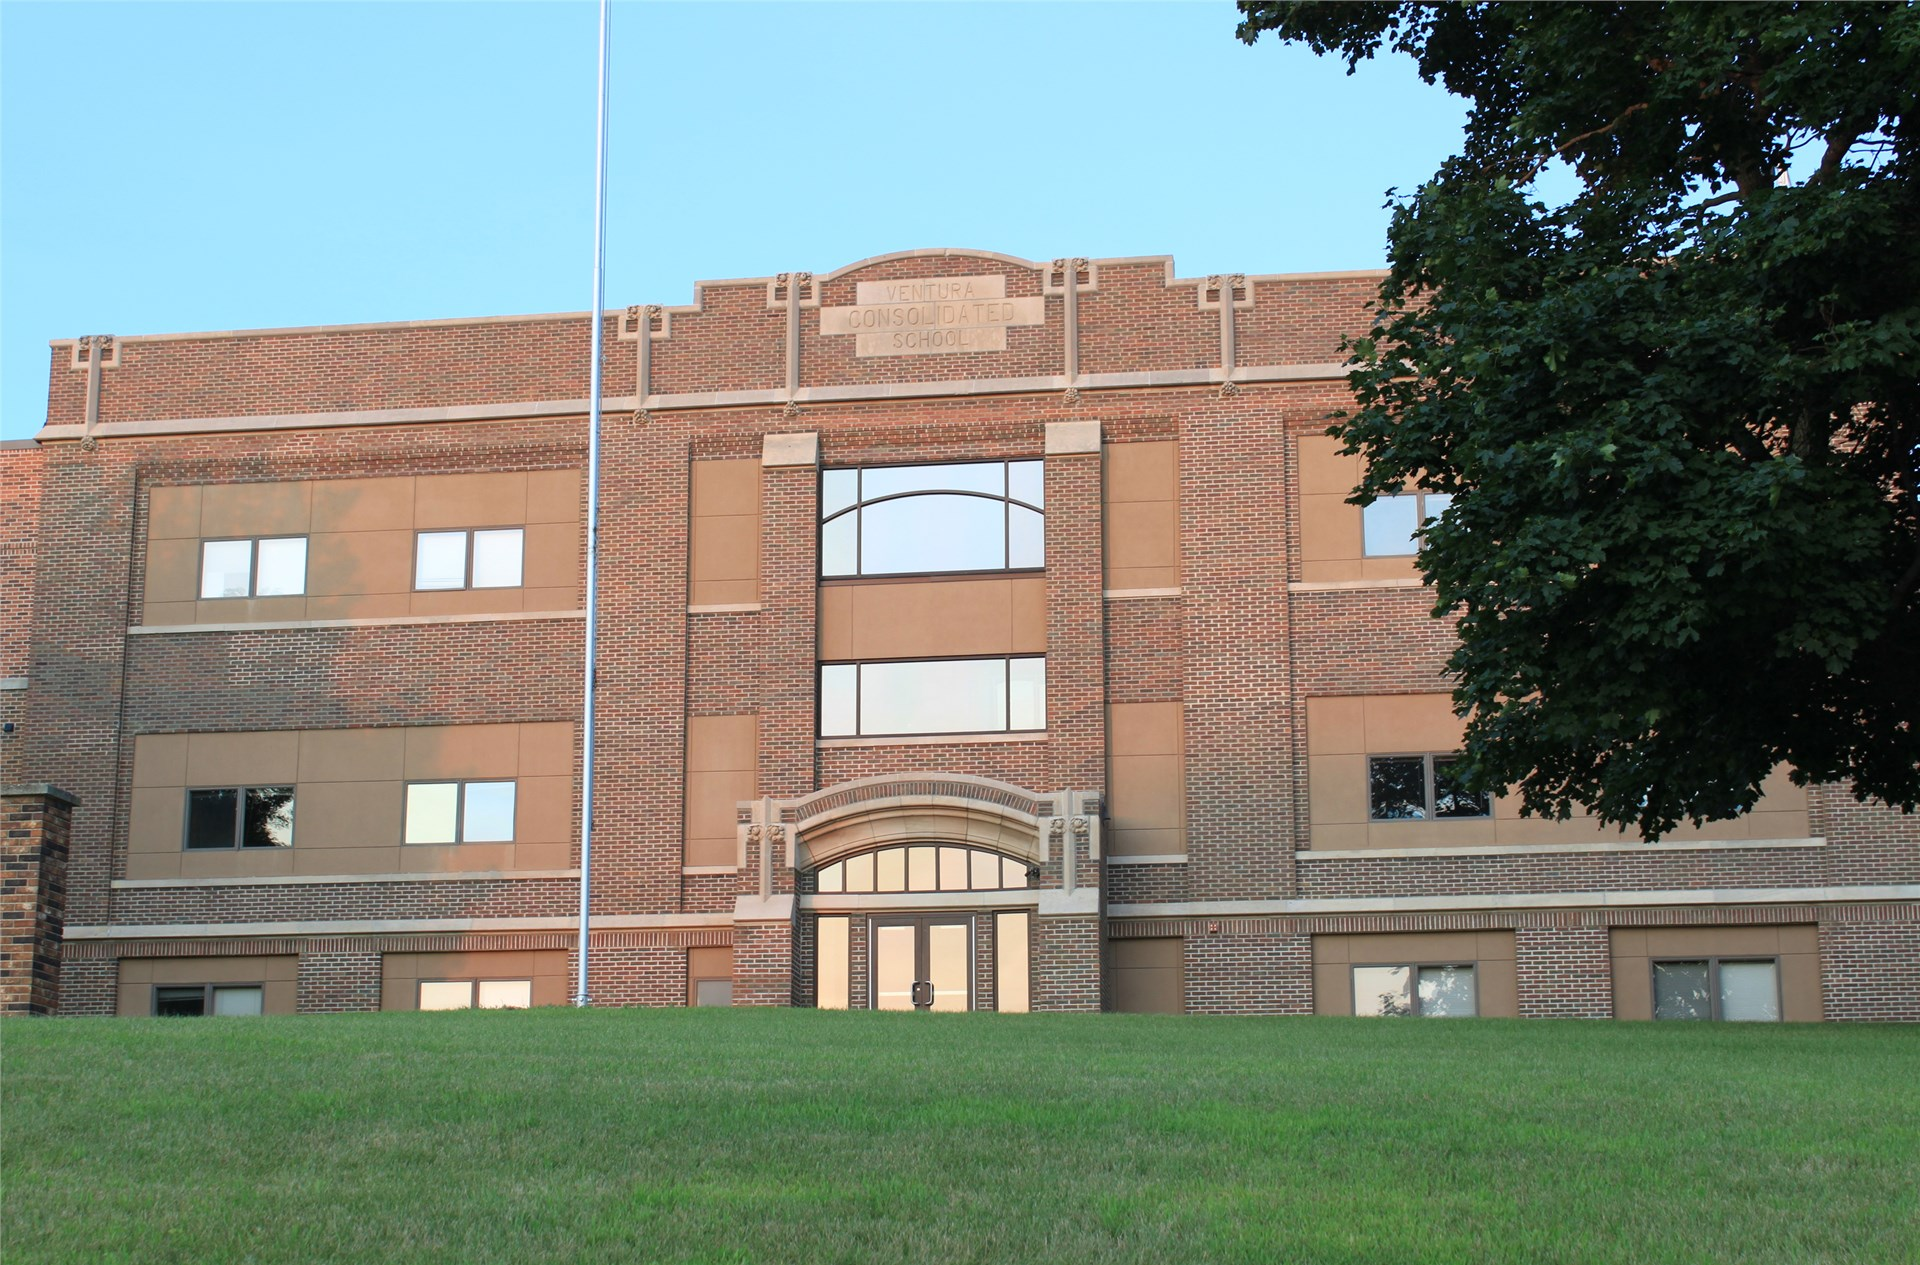 GHV Middle School building